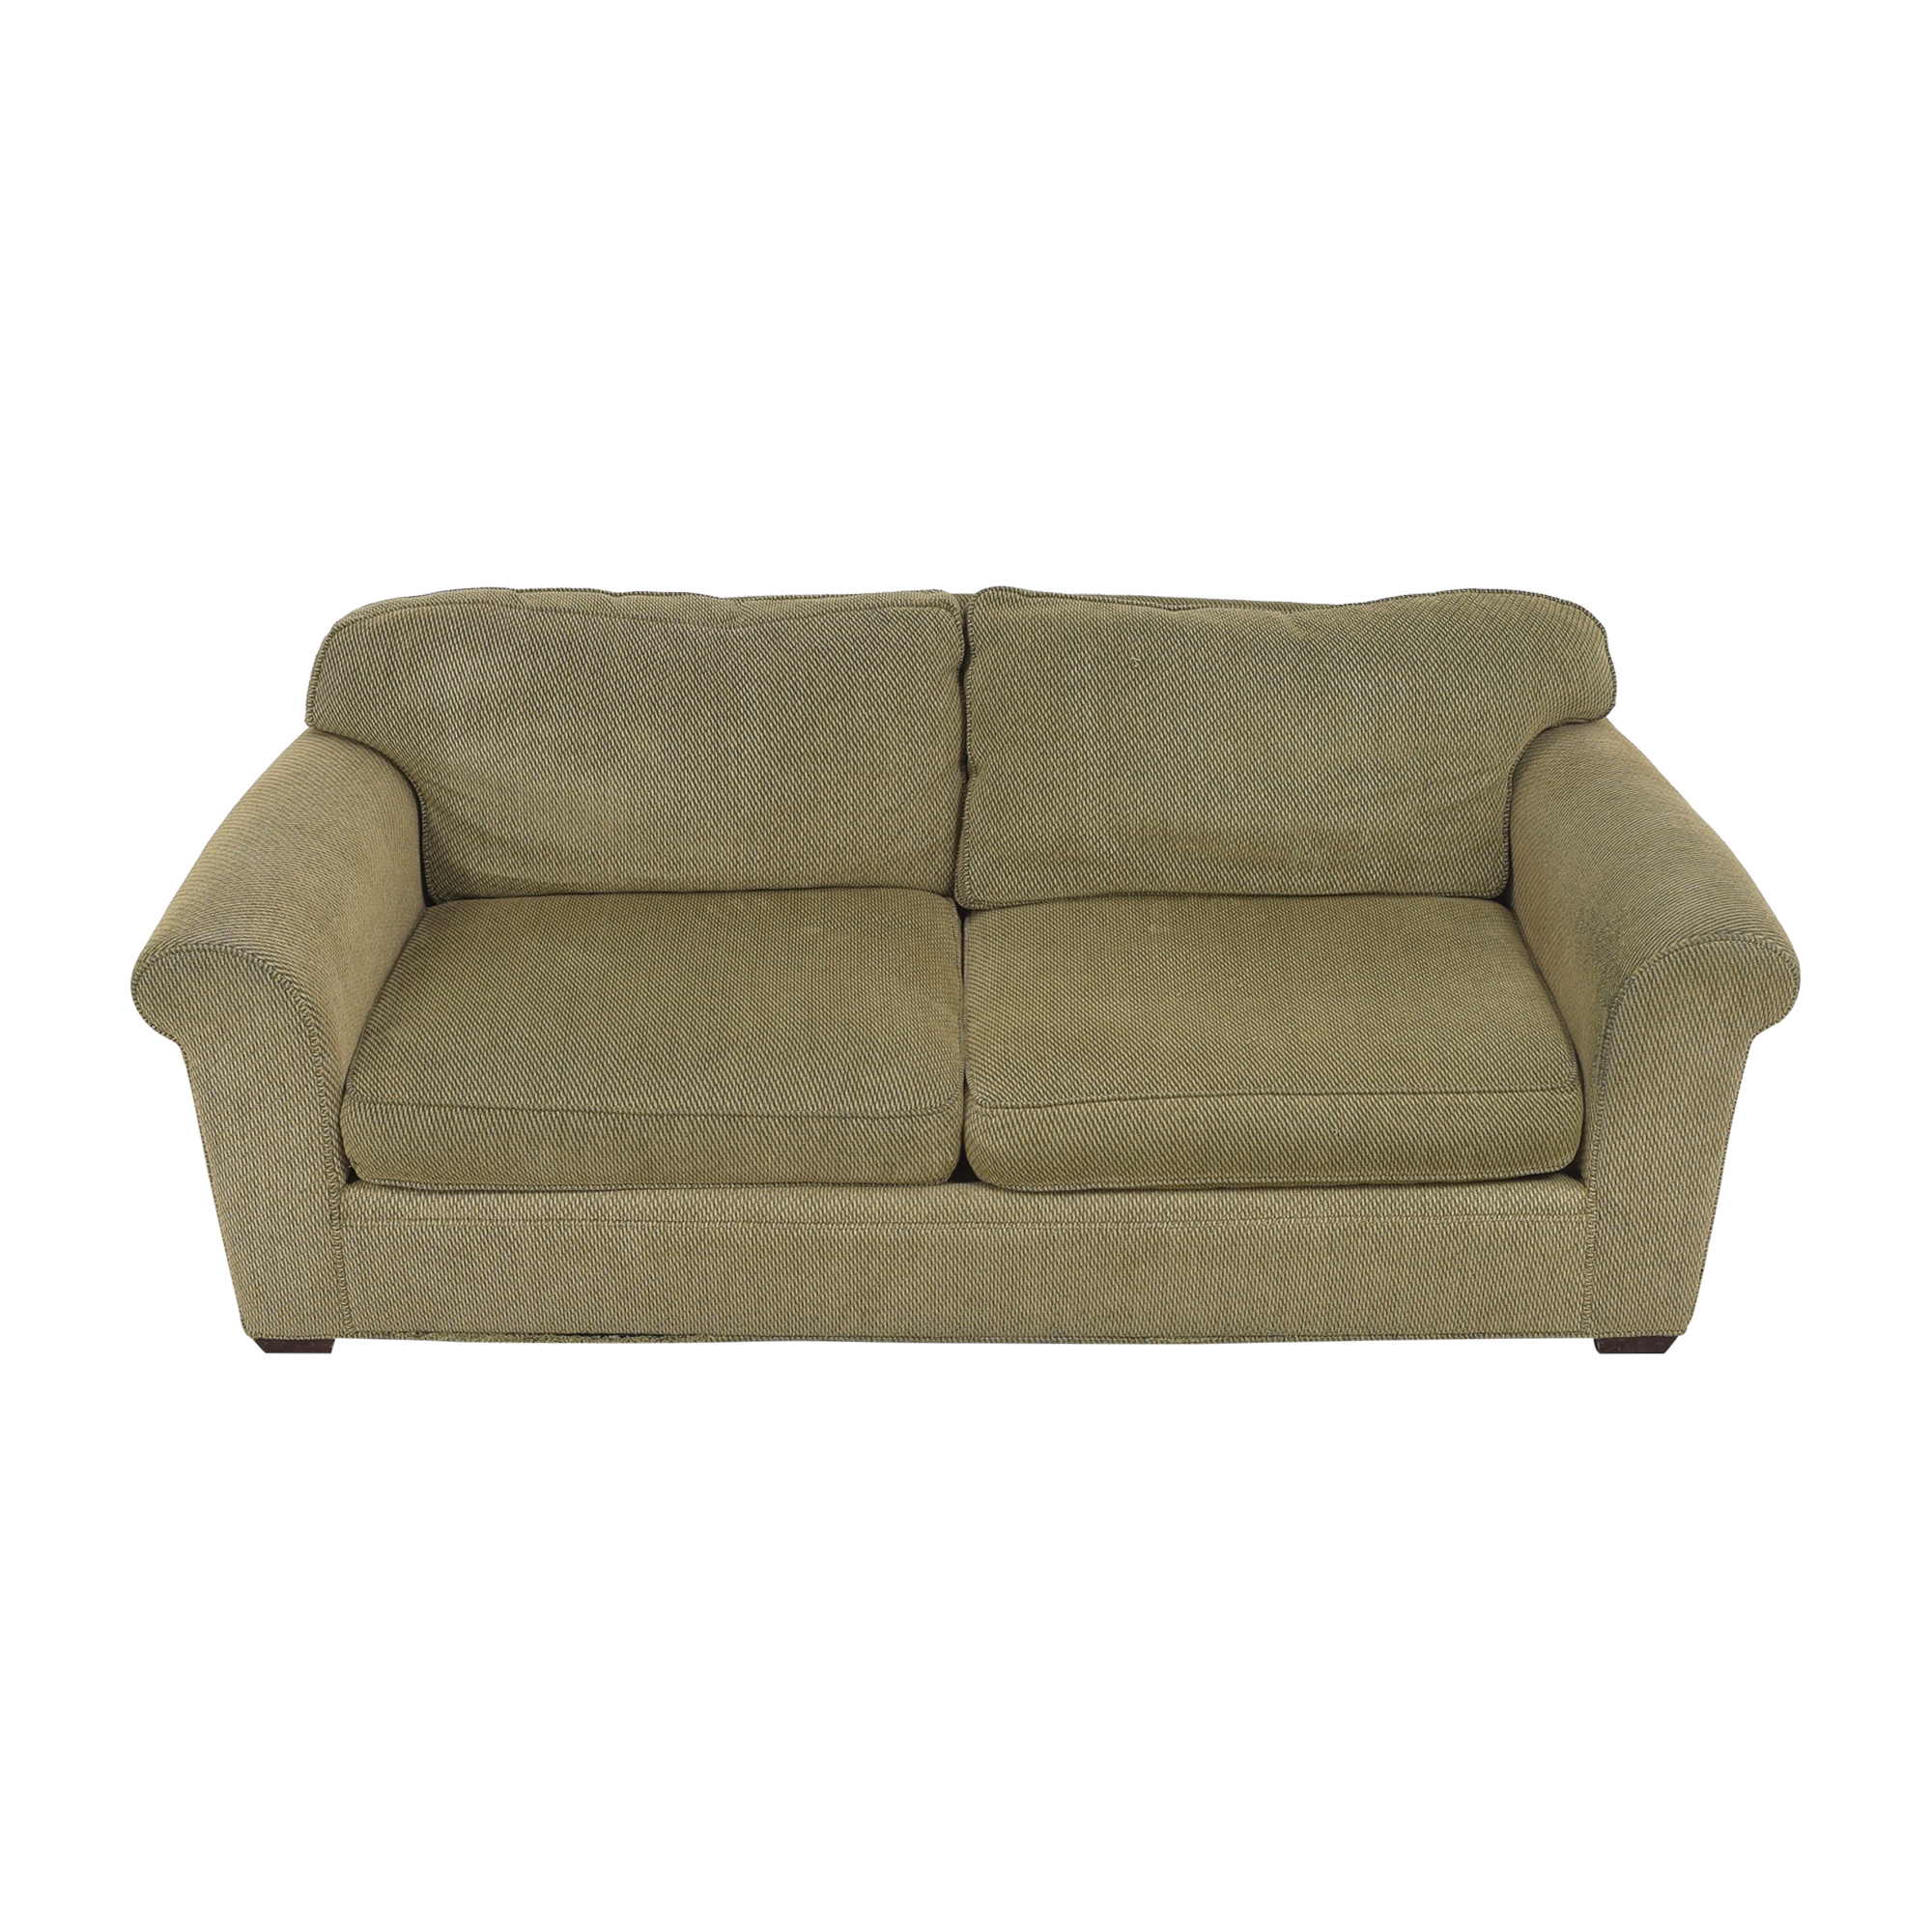 Crate & Barrel Crate & Barrel Two Cushion Sofa price